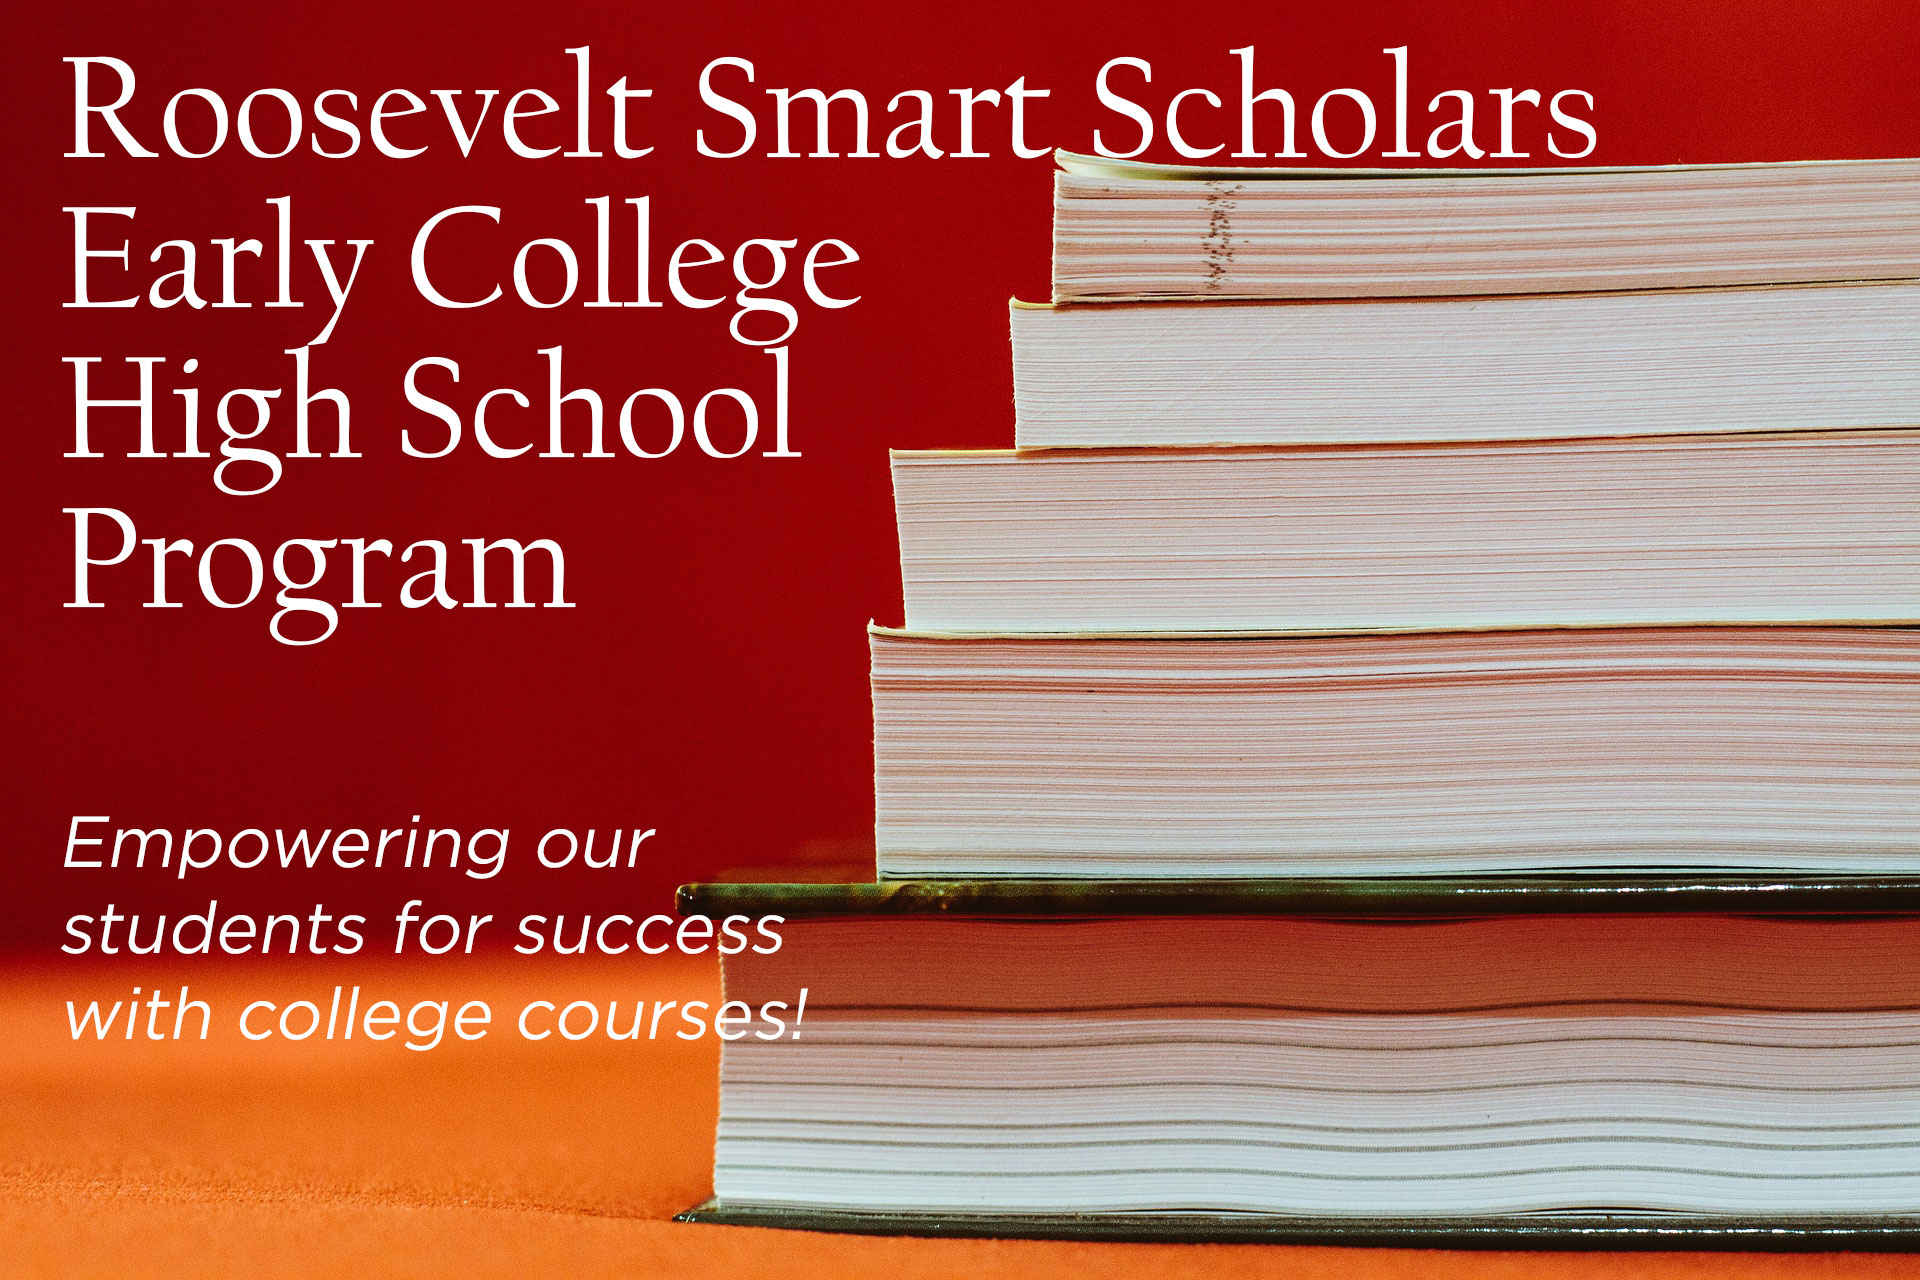 Smart Scholars Early College High School Program